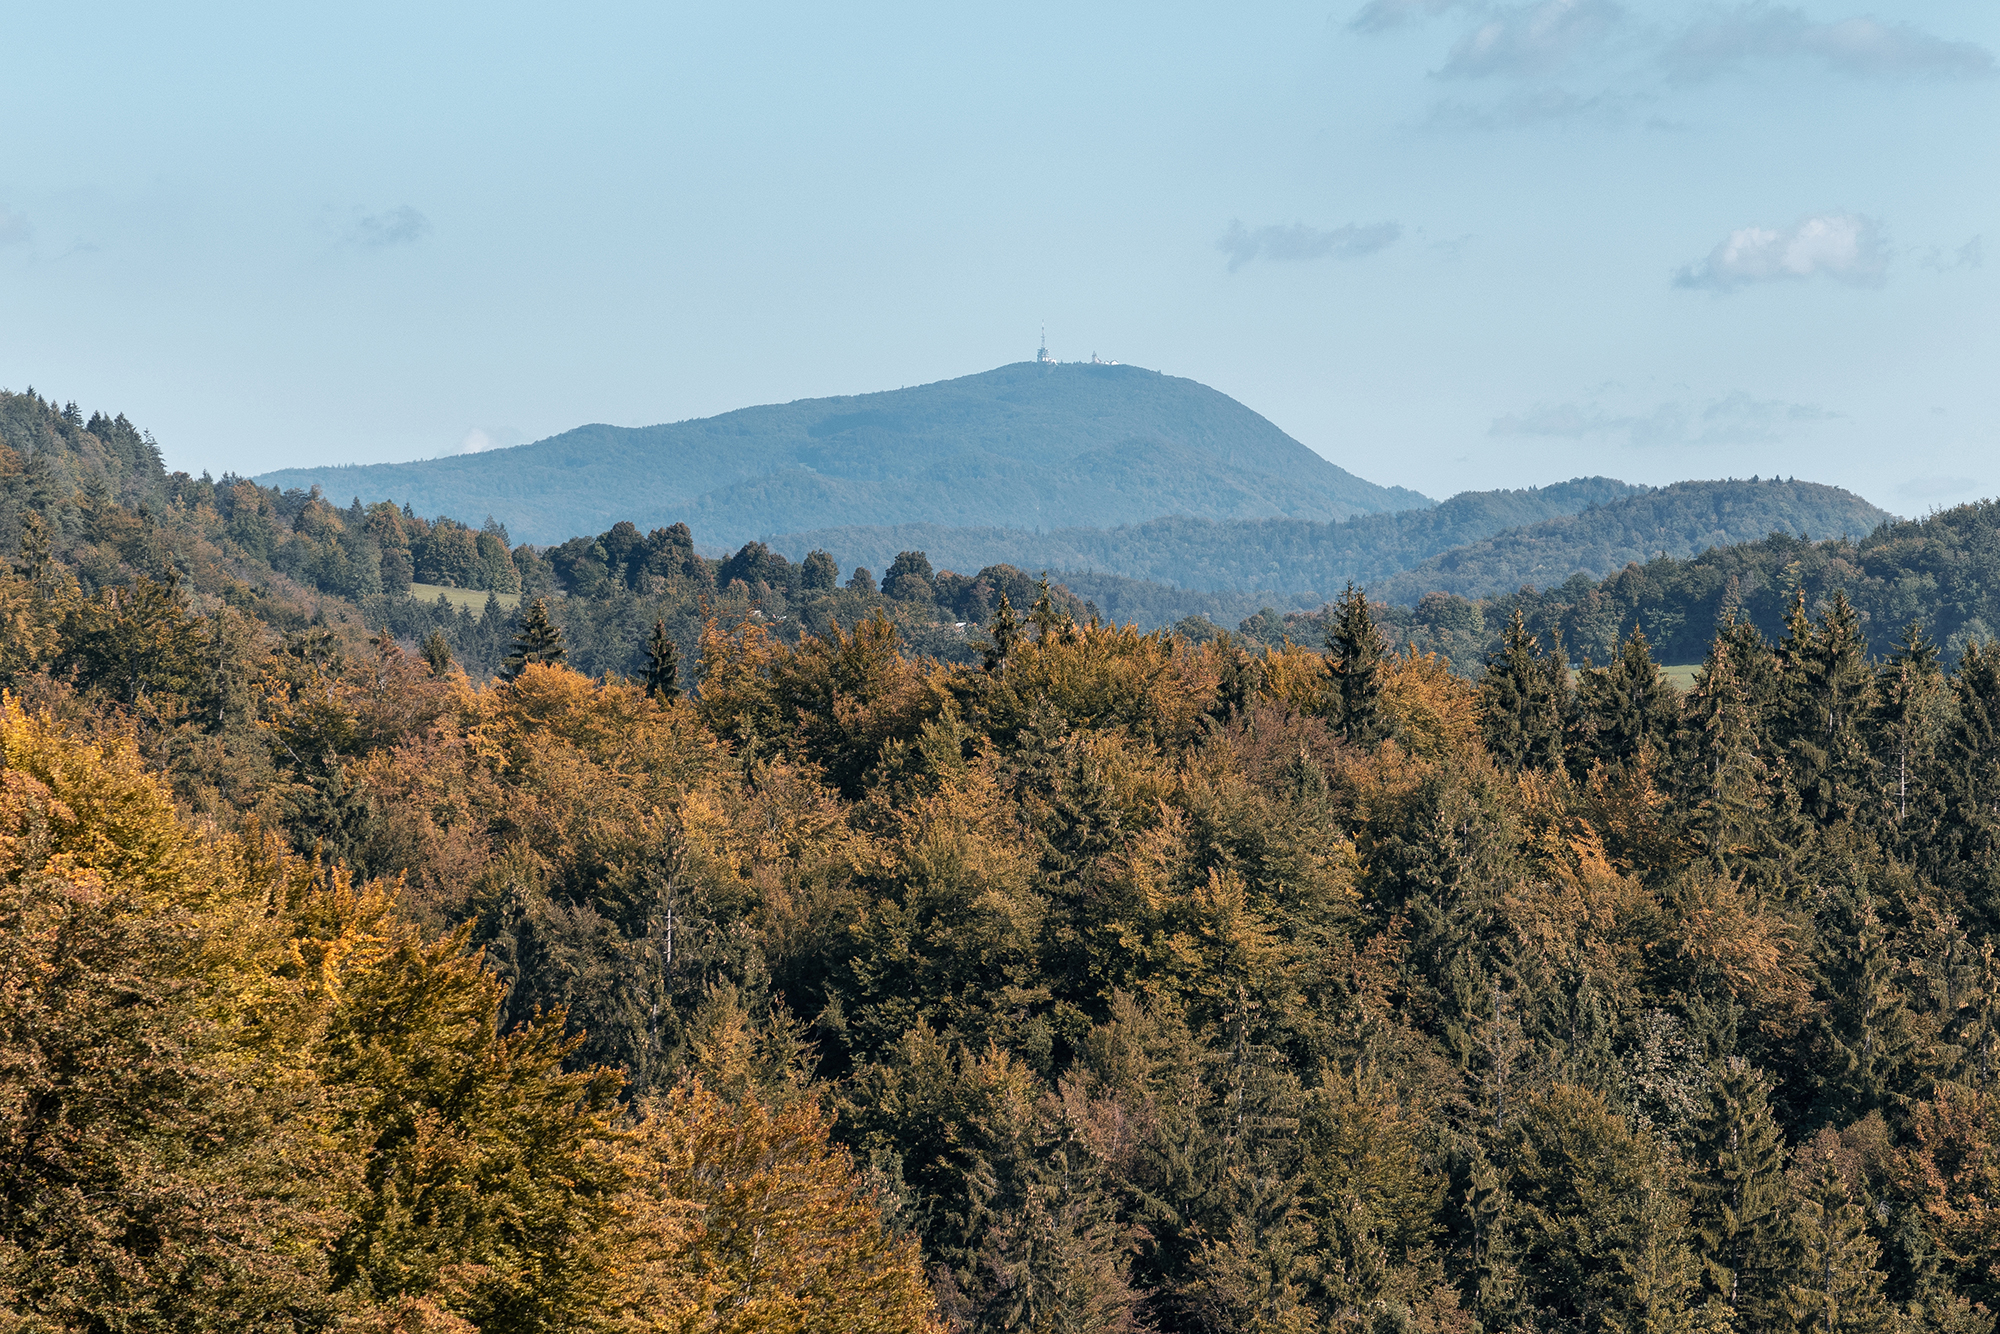 September 29, 2018 - Zasavska Sveta gora: Photo from a hike from Vace to Zasavska Sveta gora in Slovenia - view on mountain Kum with autumn forest in front.